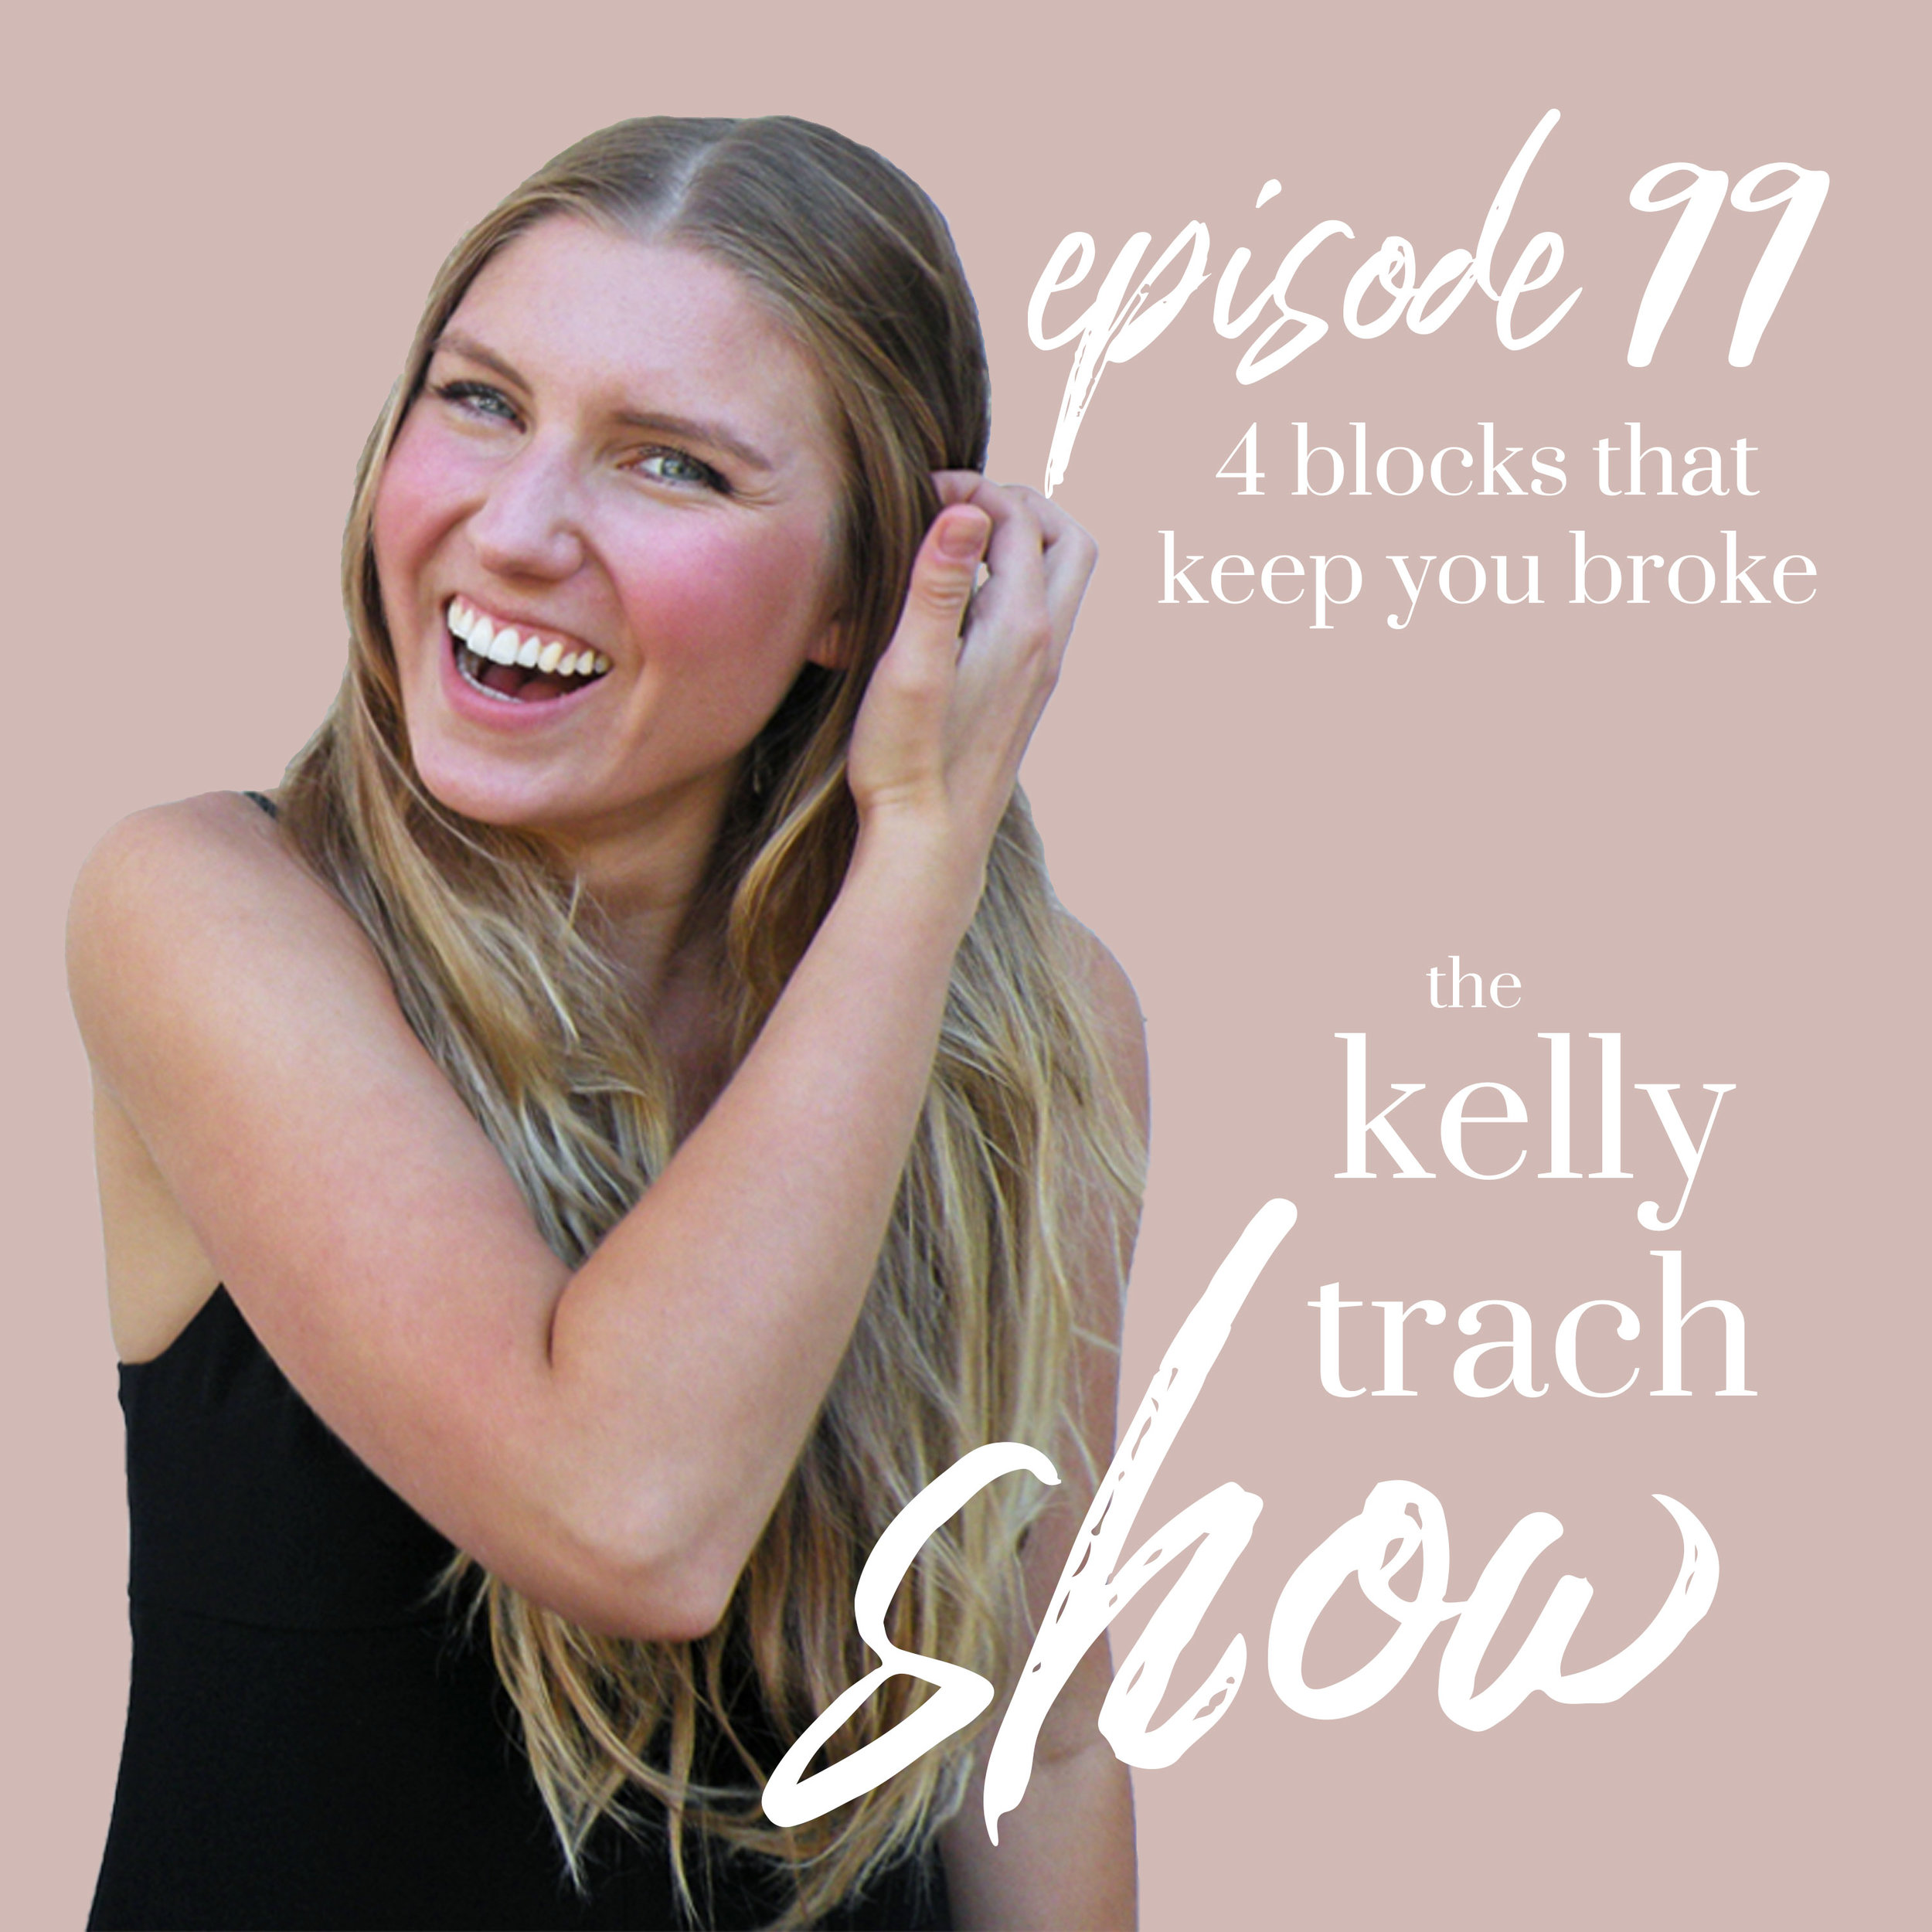 99 4 Blocks That Keep You Broke The Kelly Trach Show Podcast.jpg